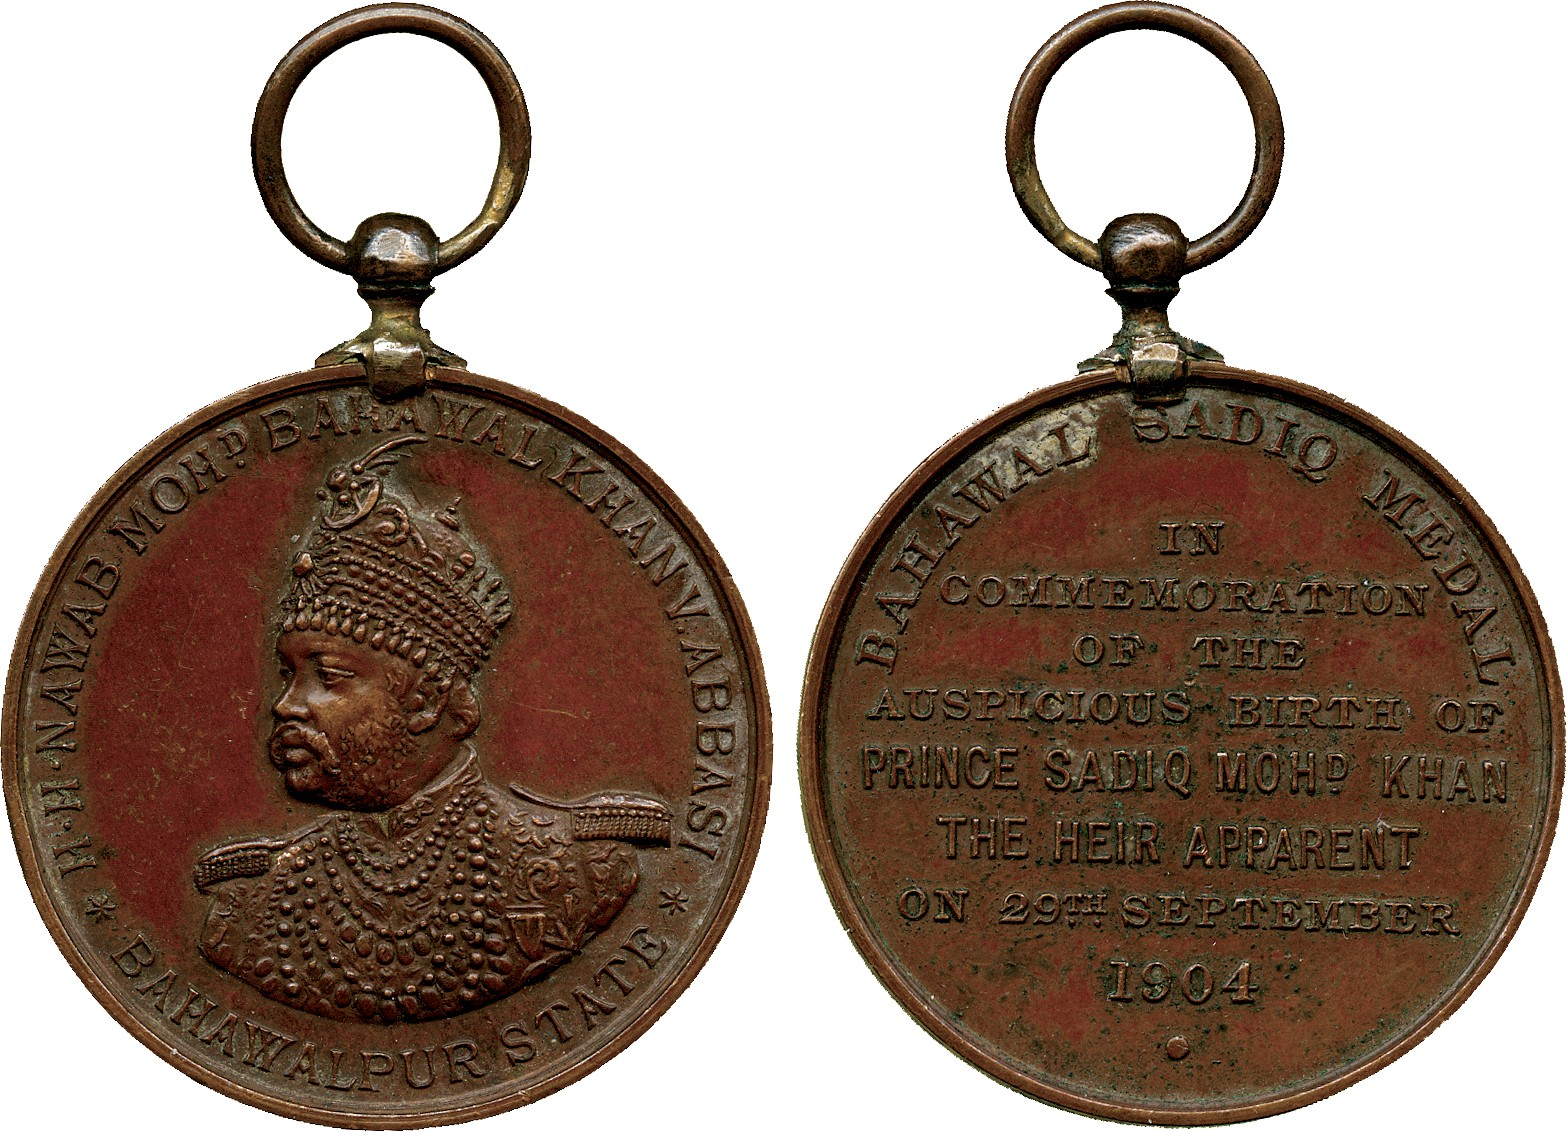 Lot 5340 - WORLD COMMEMORATIVE MEDALS. India. Bahawalpur, Birth of the Heir Apparent, Bronze Medal, 1904, by